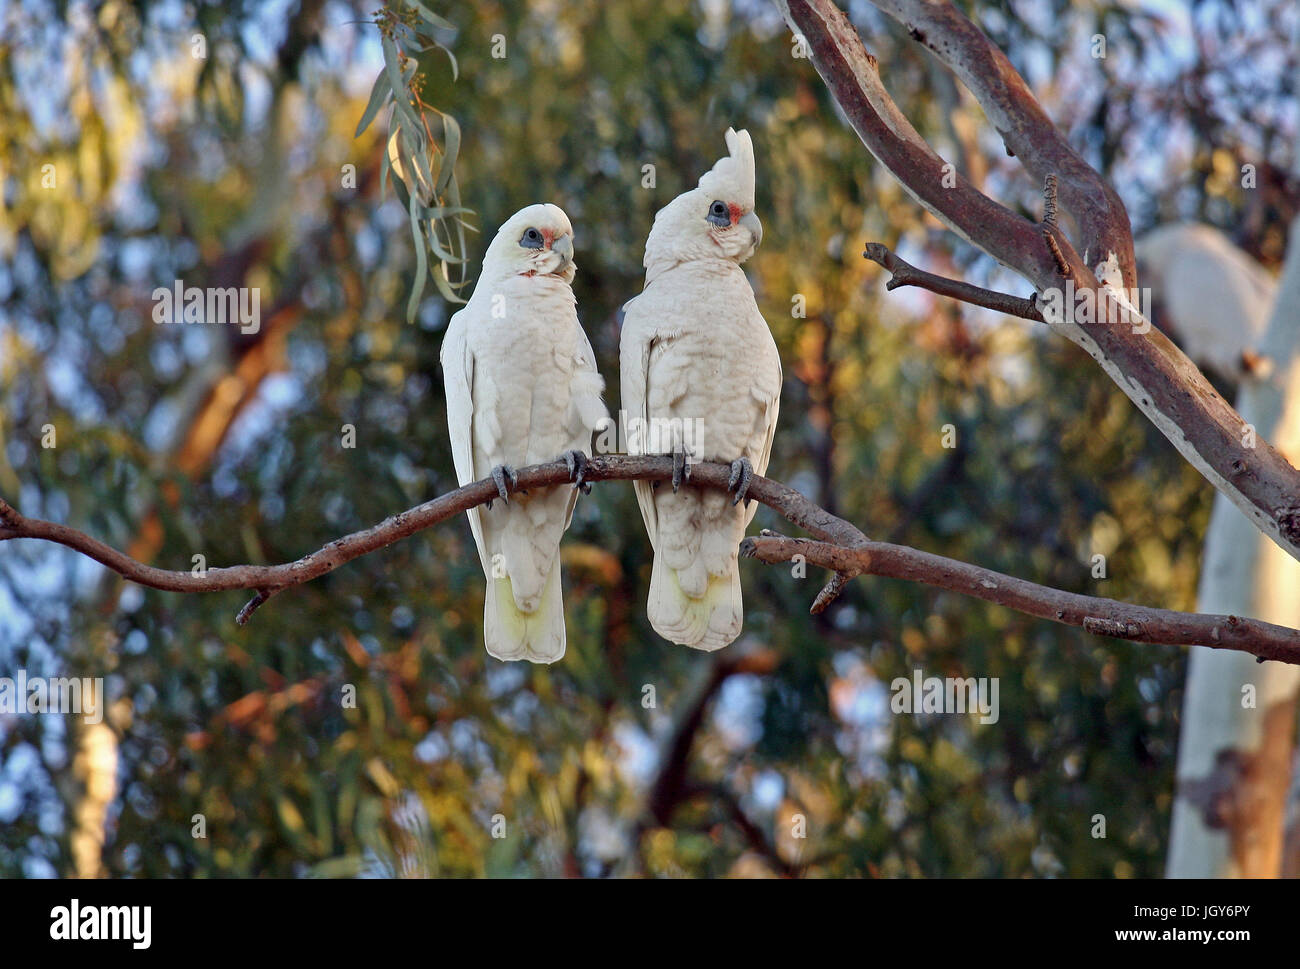 A pair of Western Corellas (Cacatua pastinator) in the northern suburbs of Perth in Western Australia - Stock Image